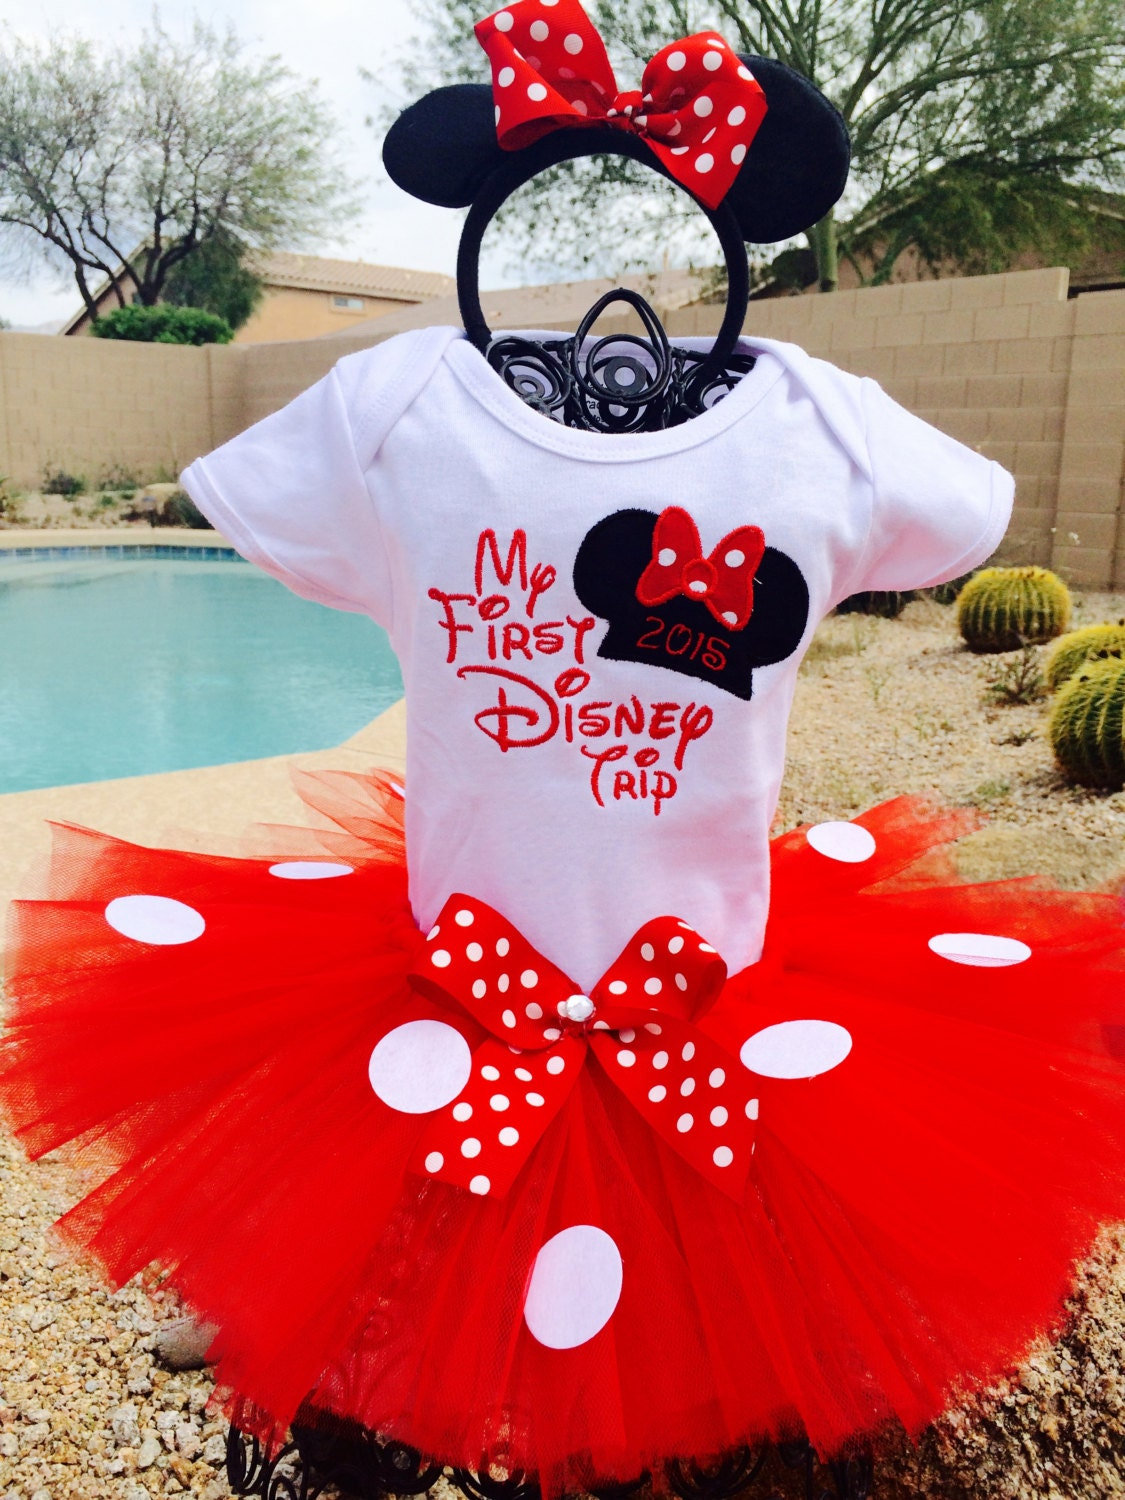 My first Disney trip tutu outfit Disney VacationHalloween